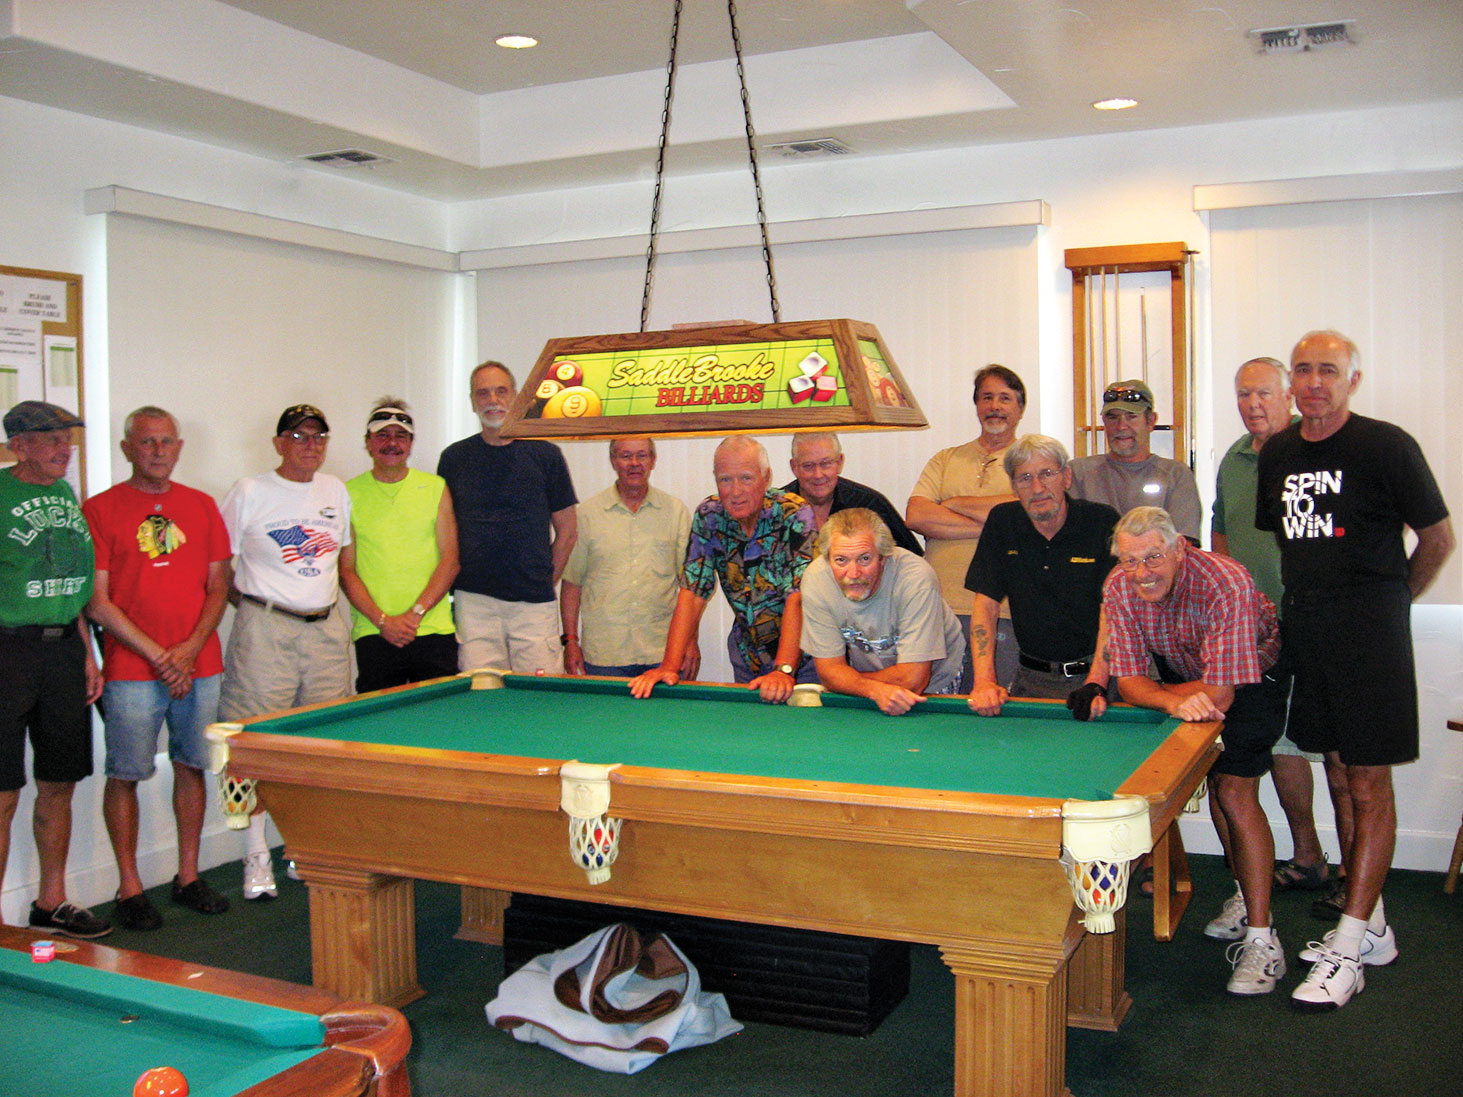 "The 16 participants, left to right: Cliff ""Lucky Shirt"" Terry, Tom ""Ski"" Kaliski, Al ""Big Al"" Petito, Paul ""Bankster"" Callas, Jim ""Aviator"" Wydick, Dave Brinker, Richard ""Loose Rack"" Galant, Tom ""Teck"" Sorensen, Dominic ""The Doctor"" Borland, Tom ""Half Jacket"" Barrett, Joe ""Fast Eddie"" Giammarino, Jim Kaufman, Don ""Deadeye"" Cox, Dan Stebbins and Jim ""Shooter"" Fabio. Richard ""Villa Park"" Werkmeister is not pictured."